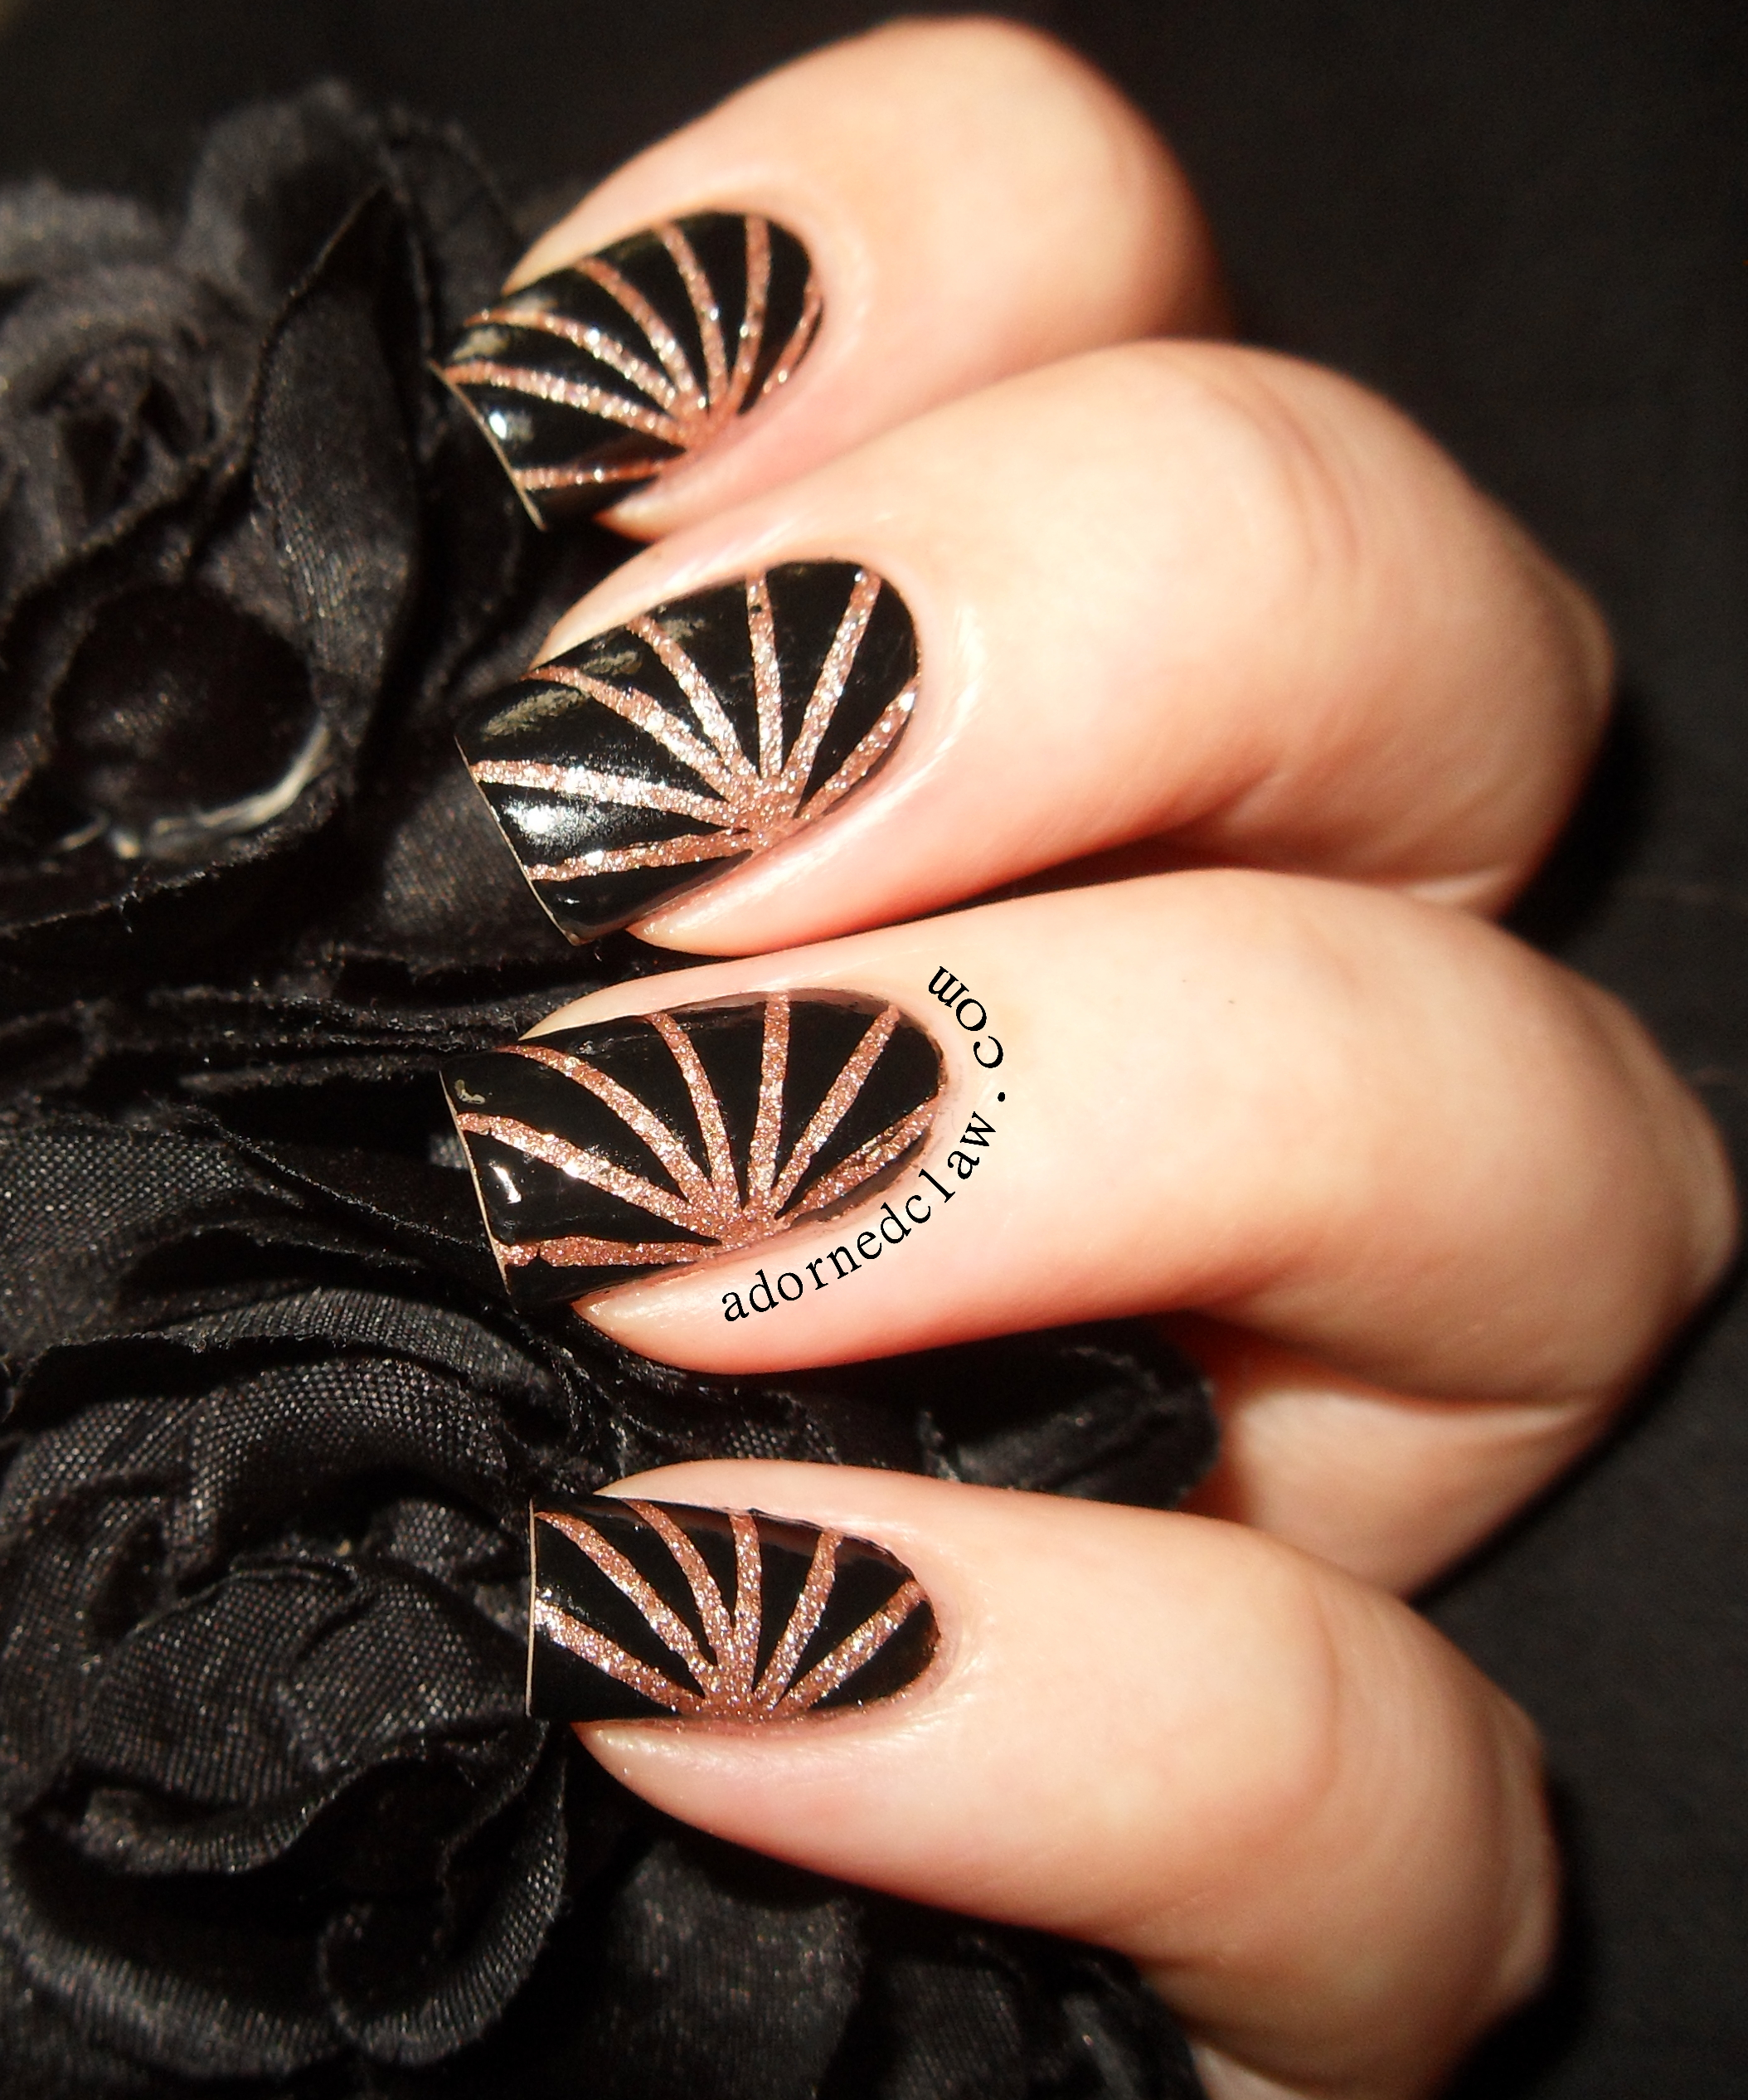 Striping Tape Nail Art | The Adorned Claw | Page 2